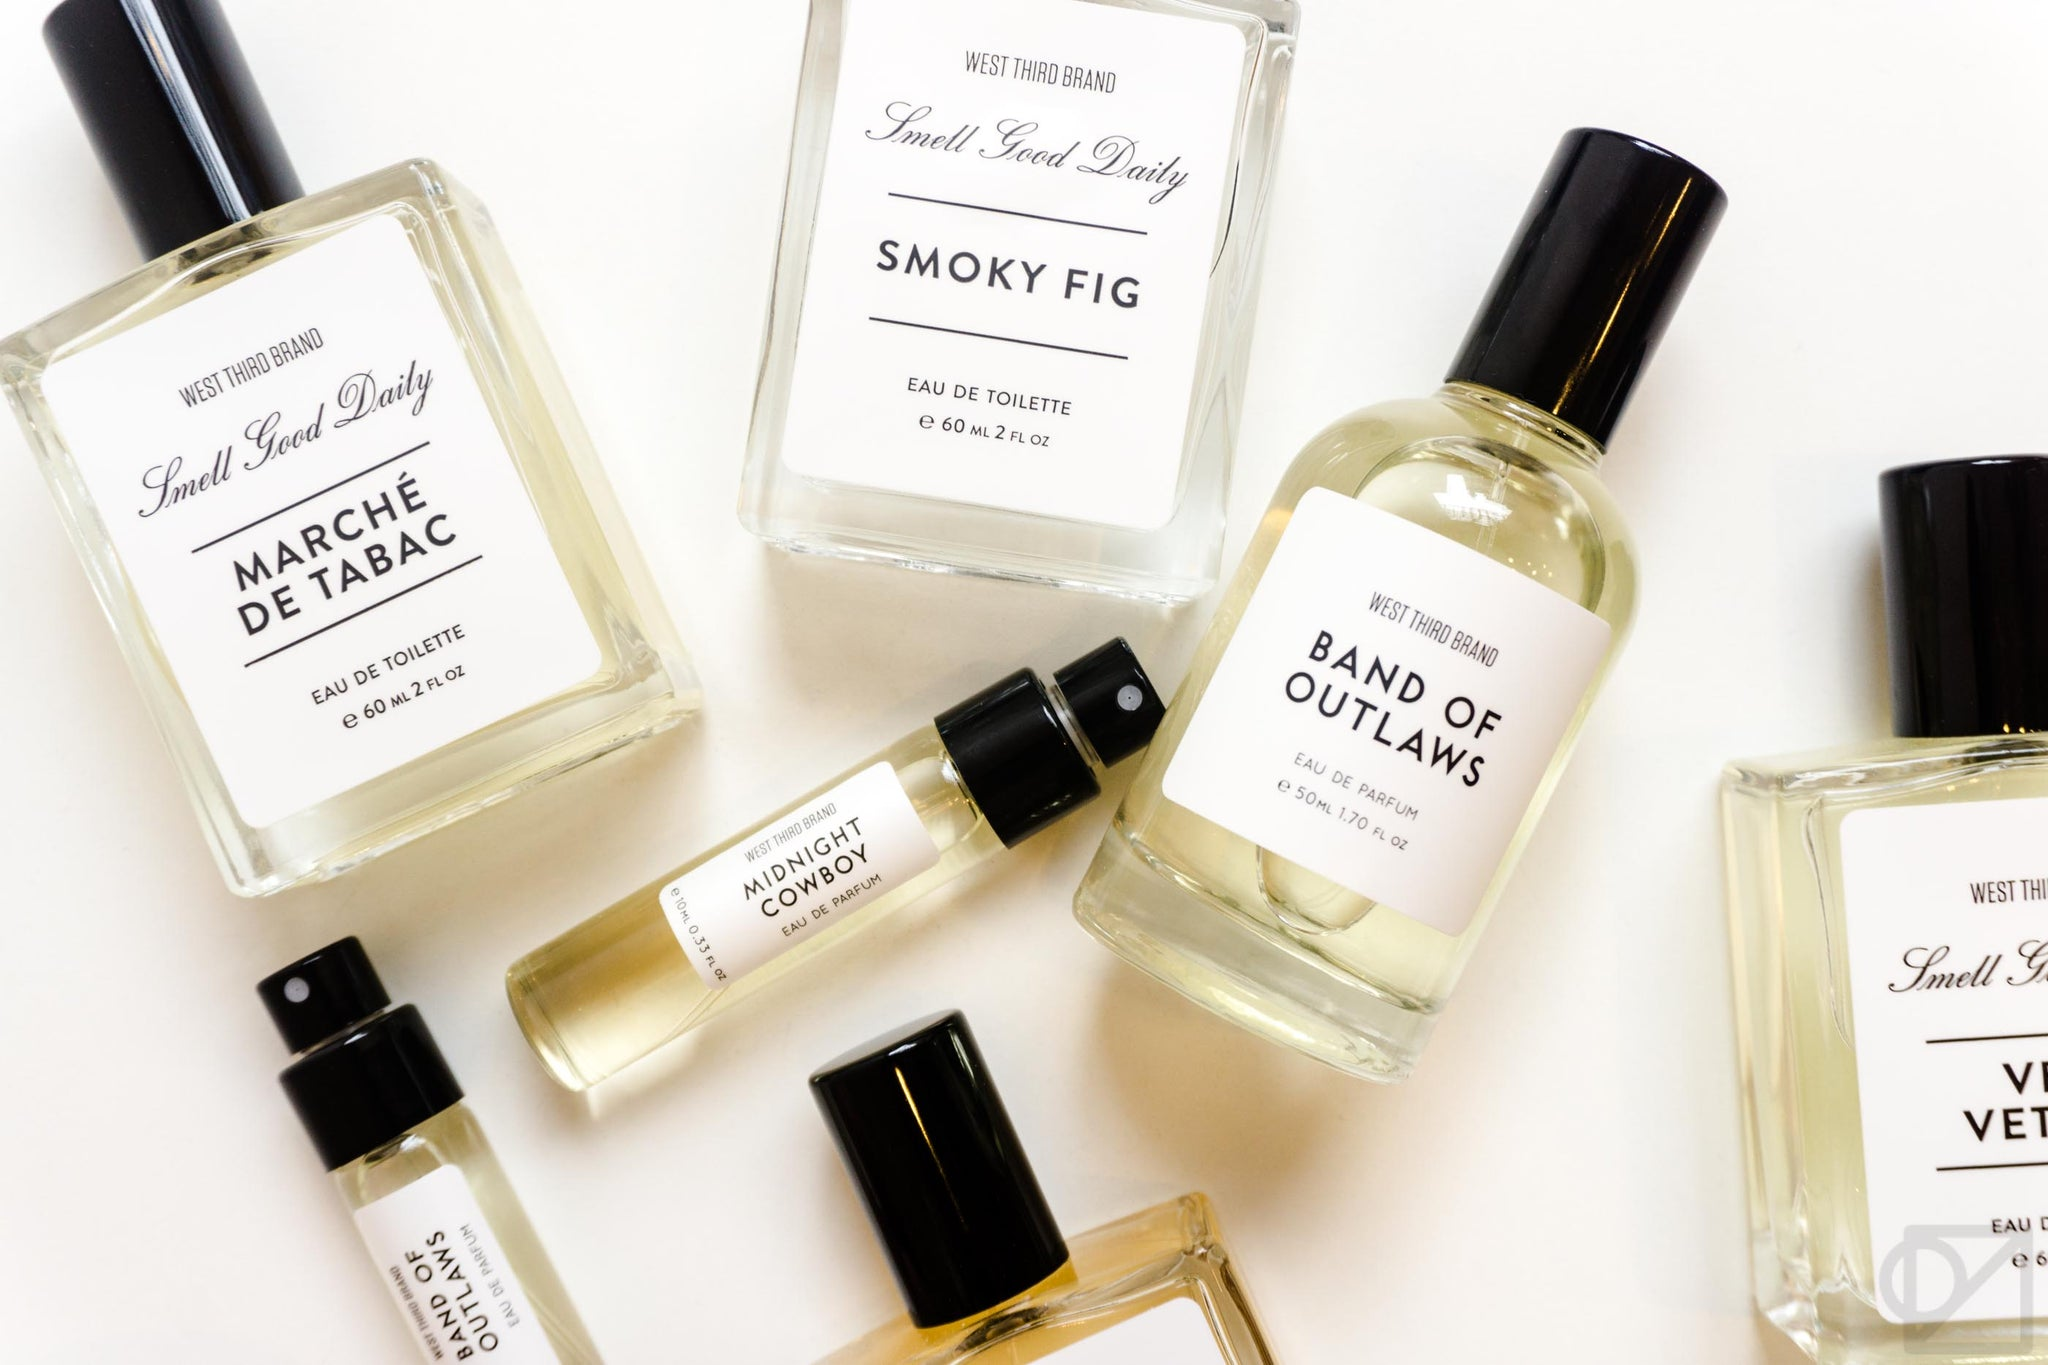 Smell Good Daily Tonic: Voyage d'Tabac